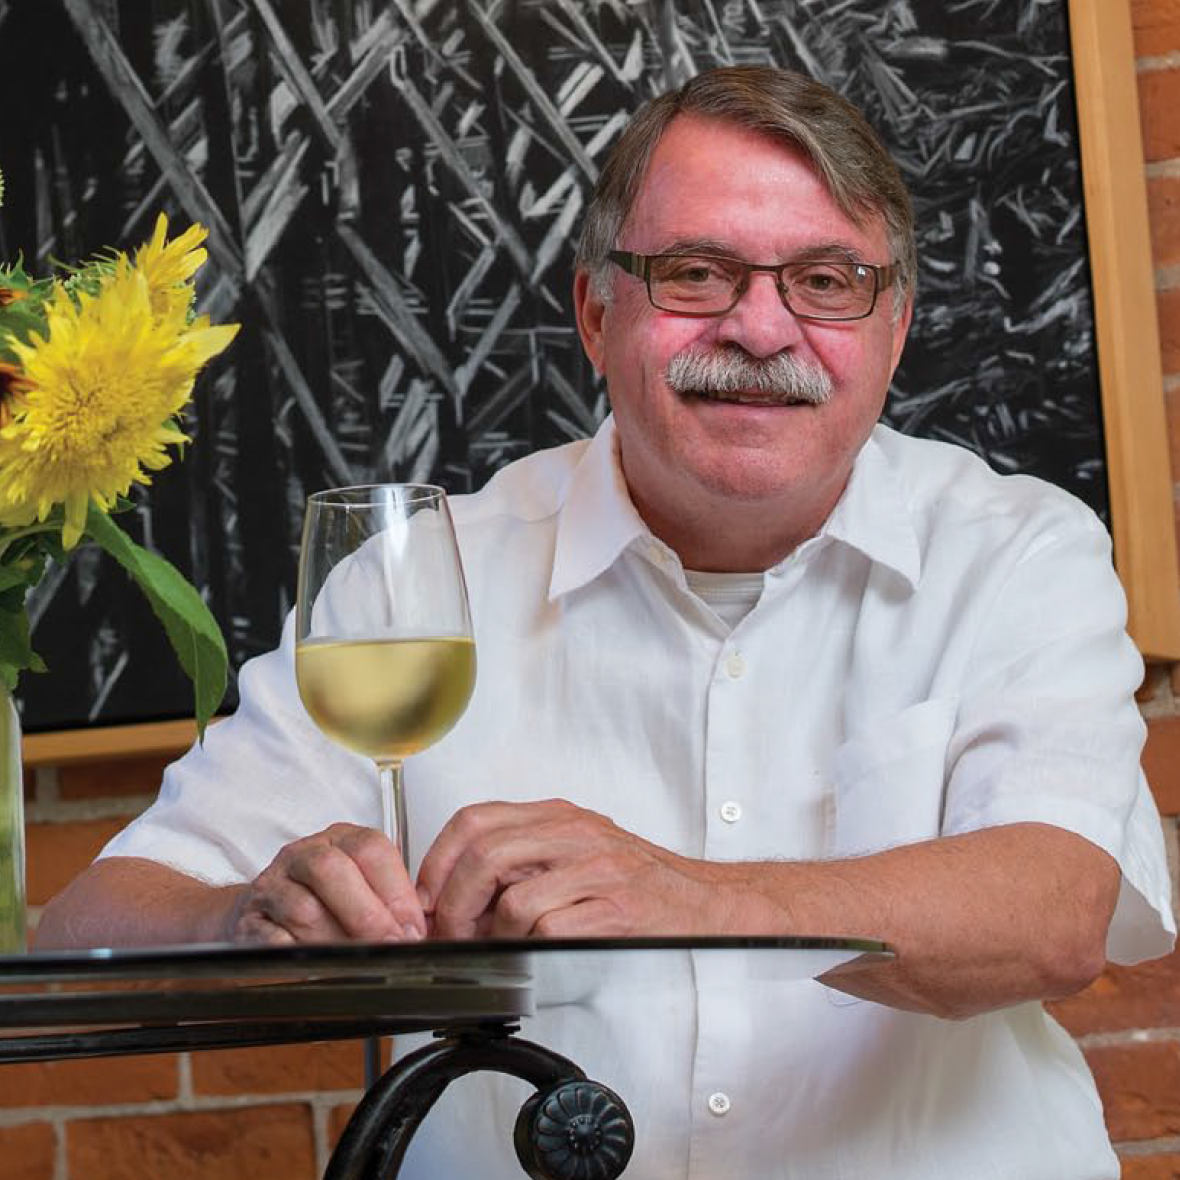 PHILOSOPHER BUSINESSMAN - Busy restaurateur lives intentional life committed to environmentalism as well as a culinary flairGrand Magazine, November-December 2017